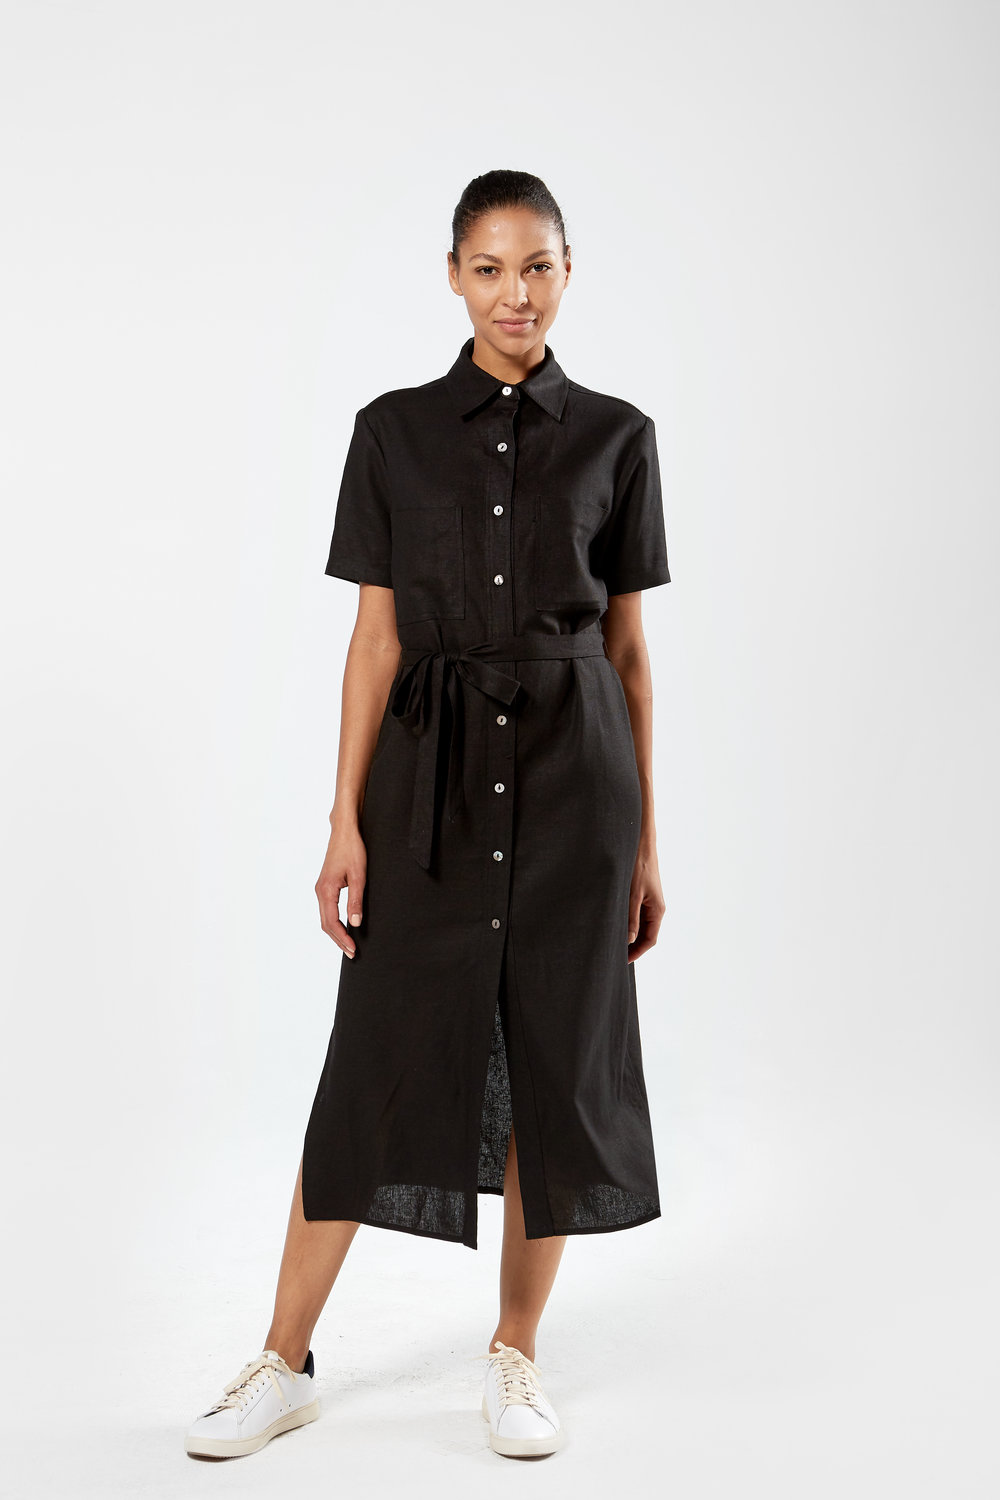 Women's Shirt Dress, Self Fabric Belt